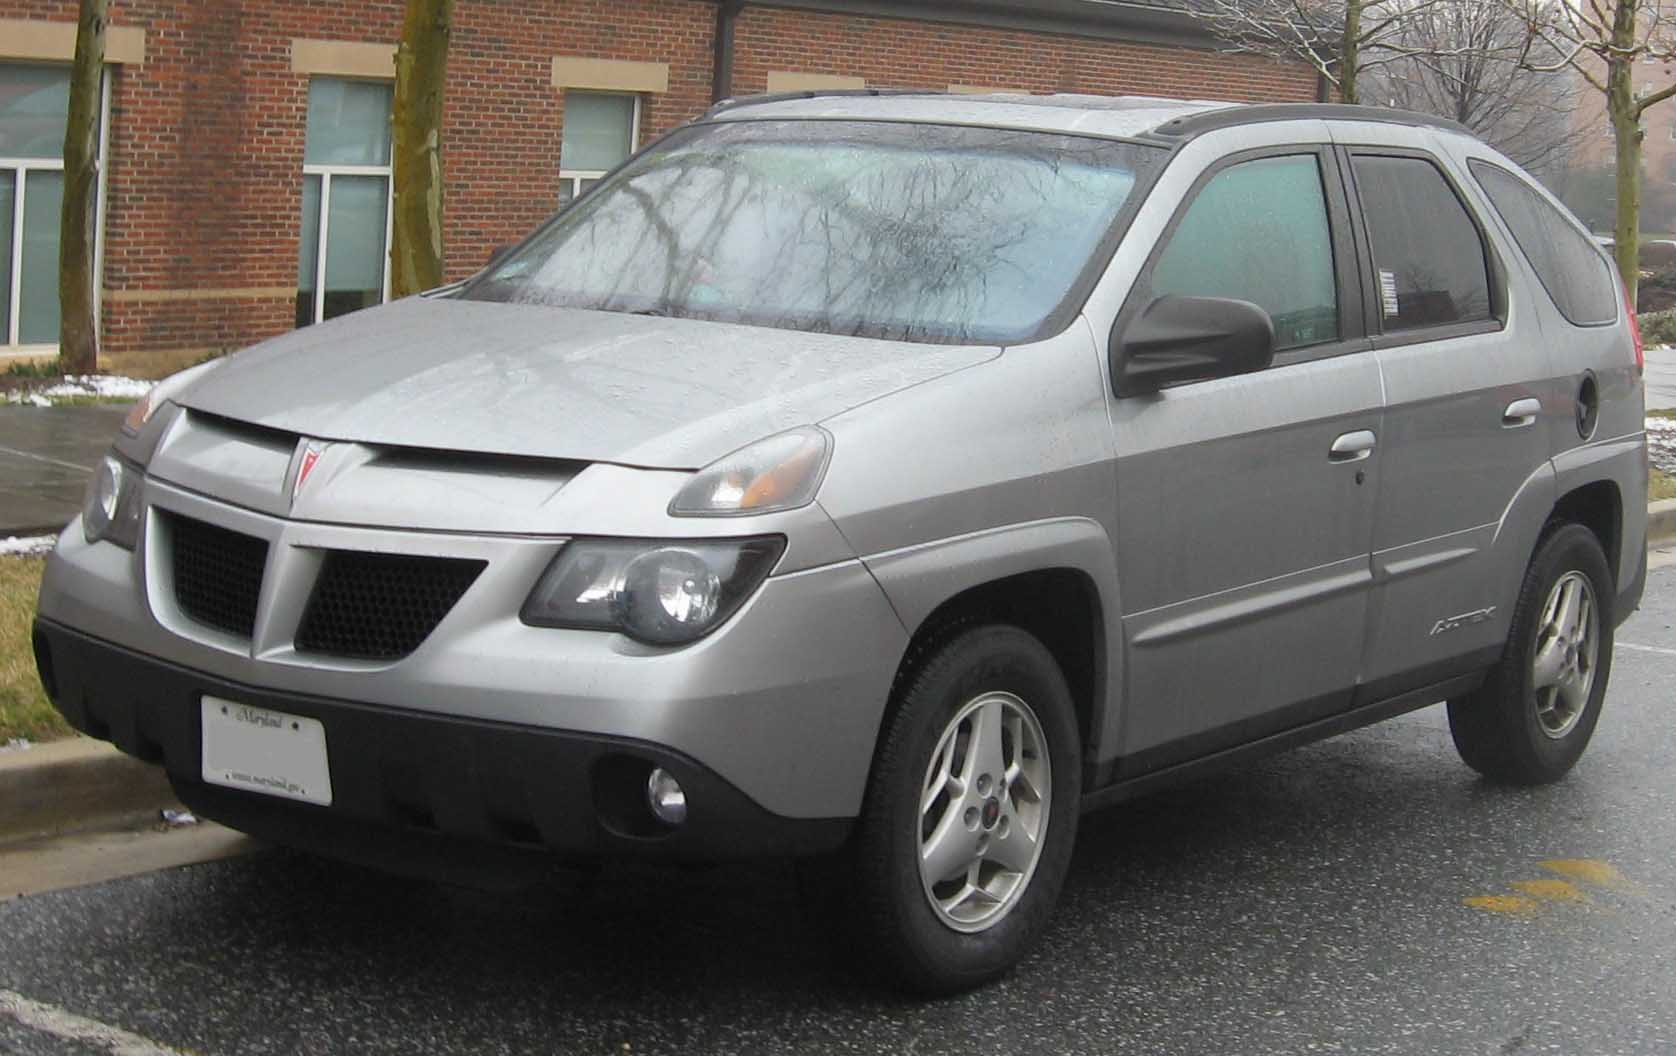 Pontiac aztek photo - 1